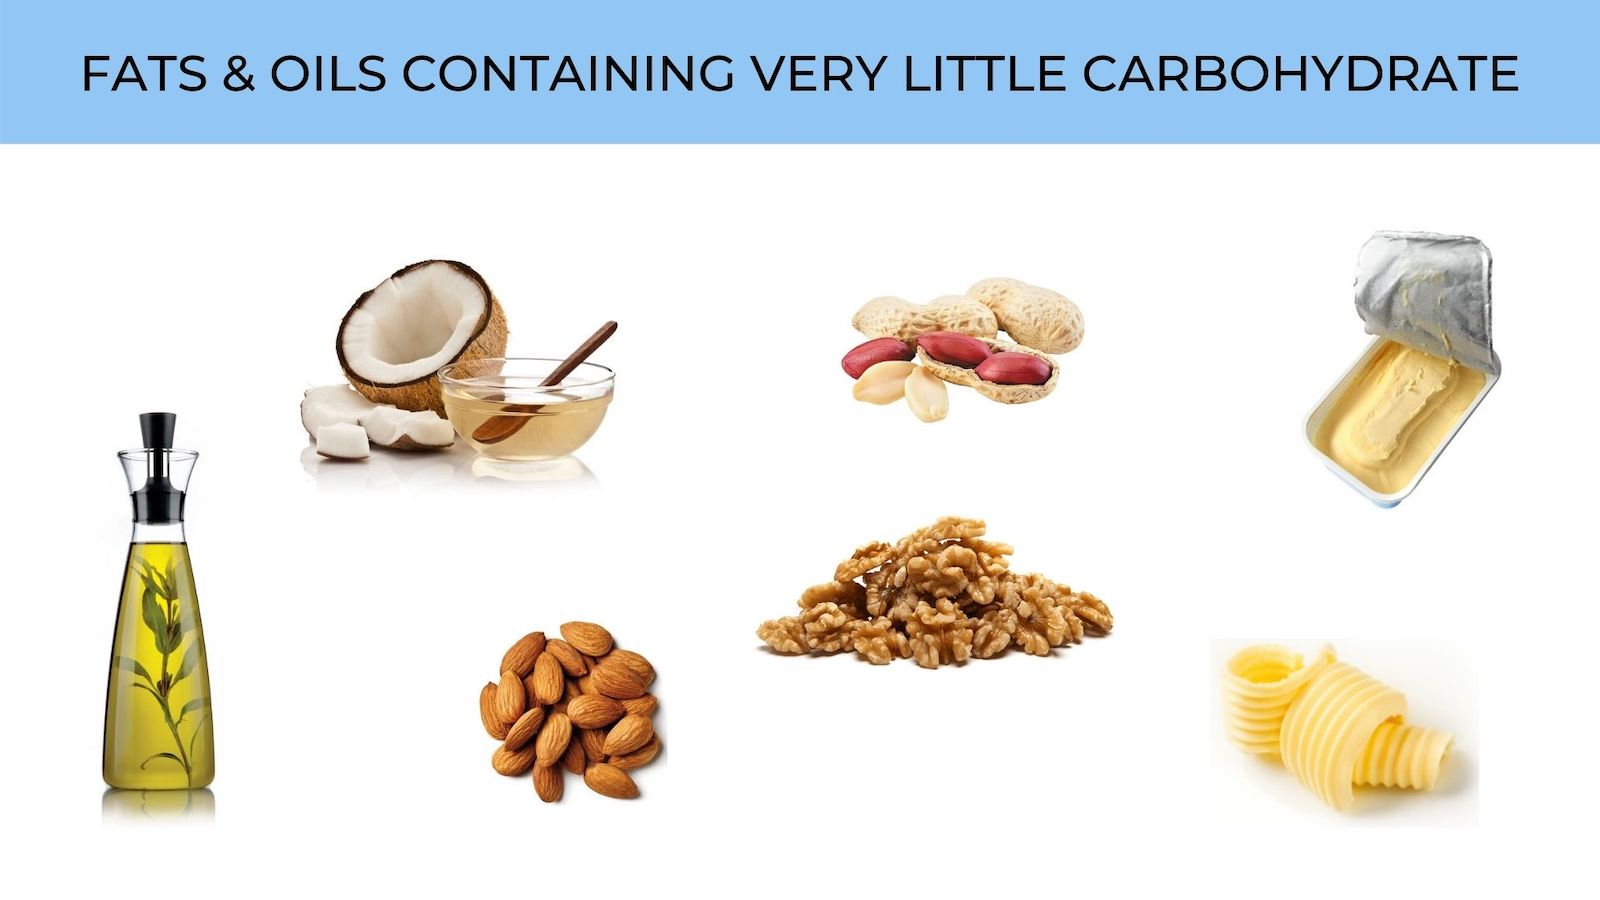 fats and oils with very little carbohydrate